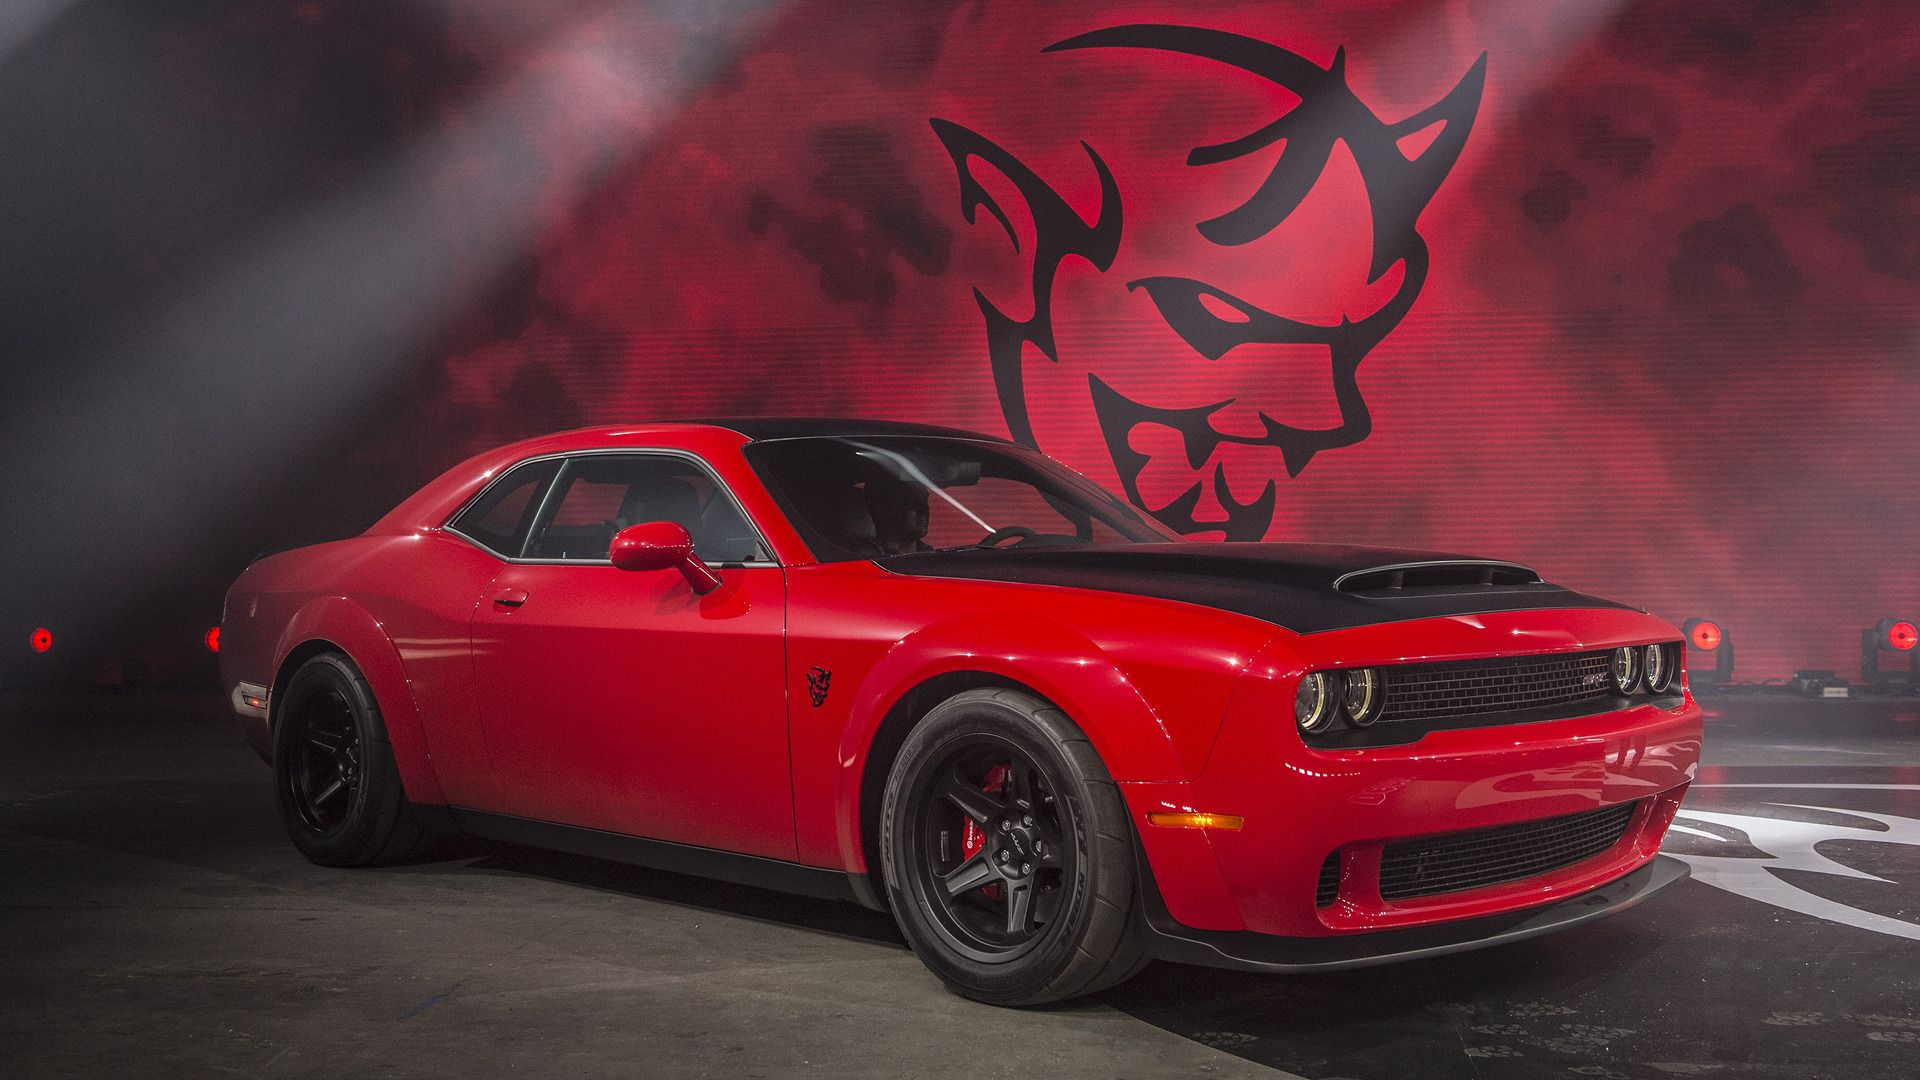 2018 Dodge Challenger Srt Demon Wallpaper Challenger Srt Demon